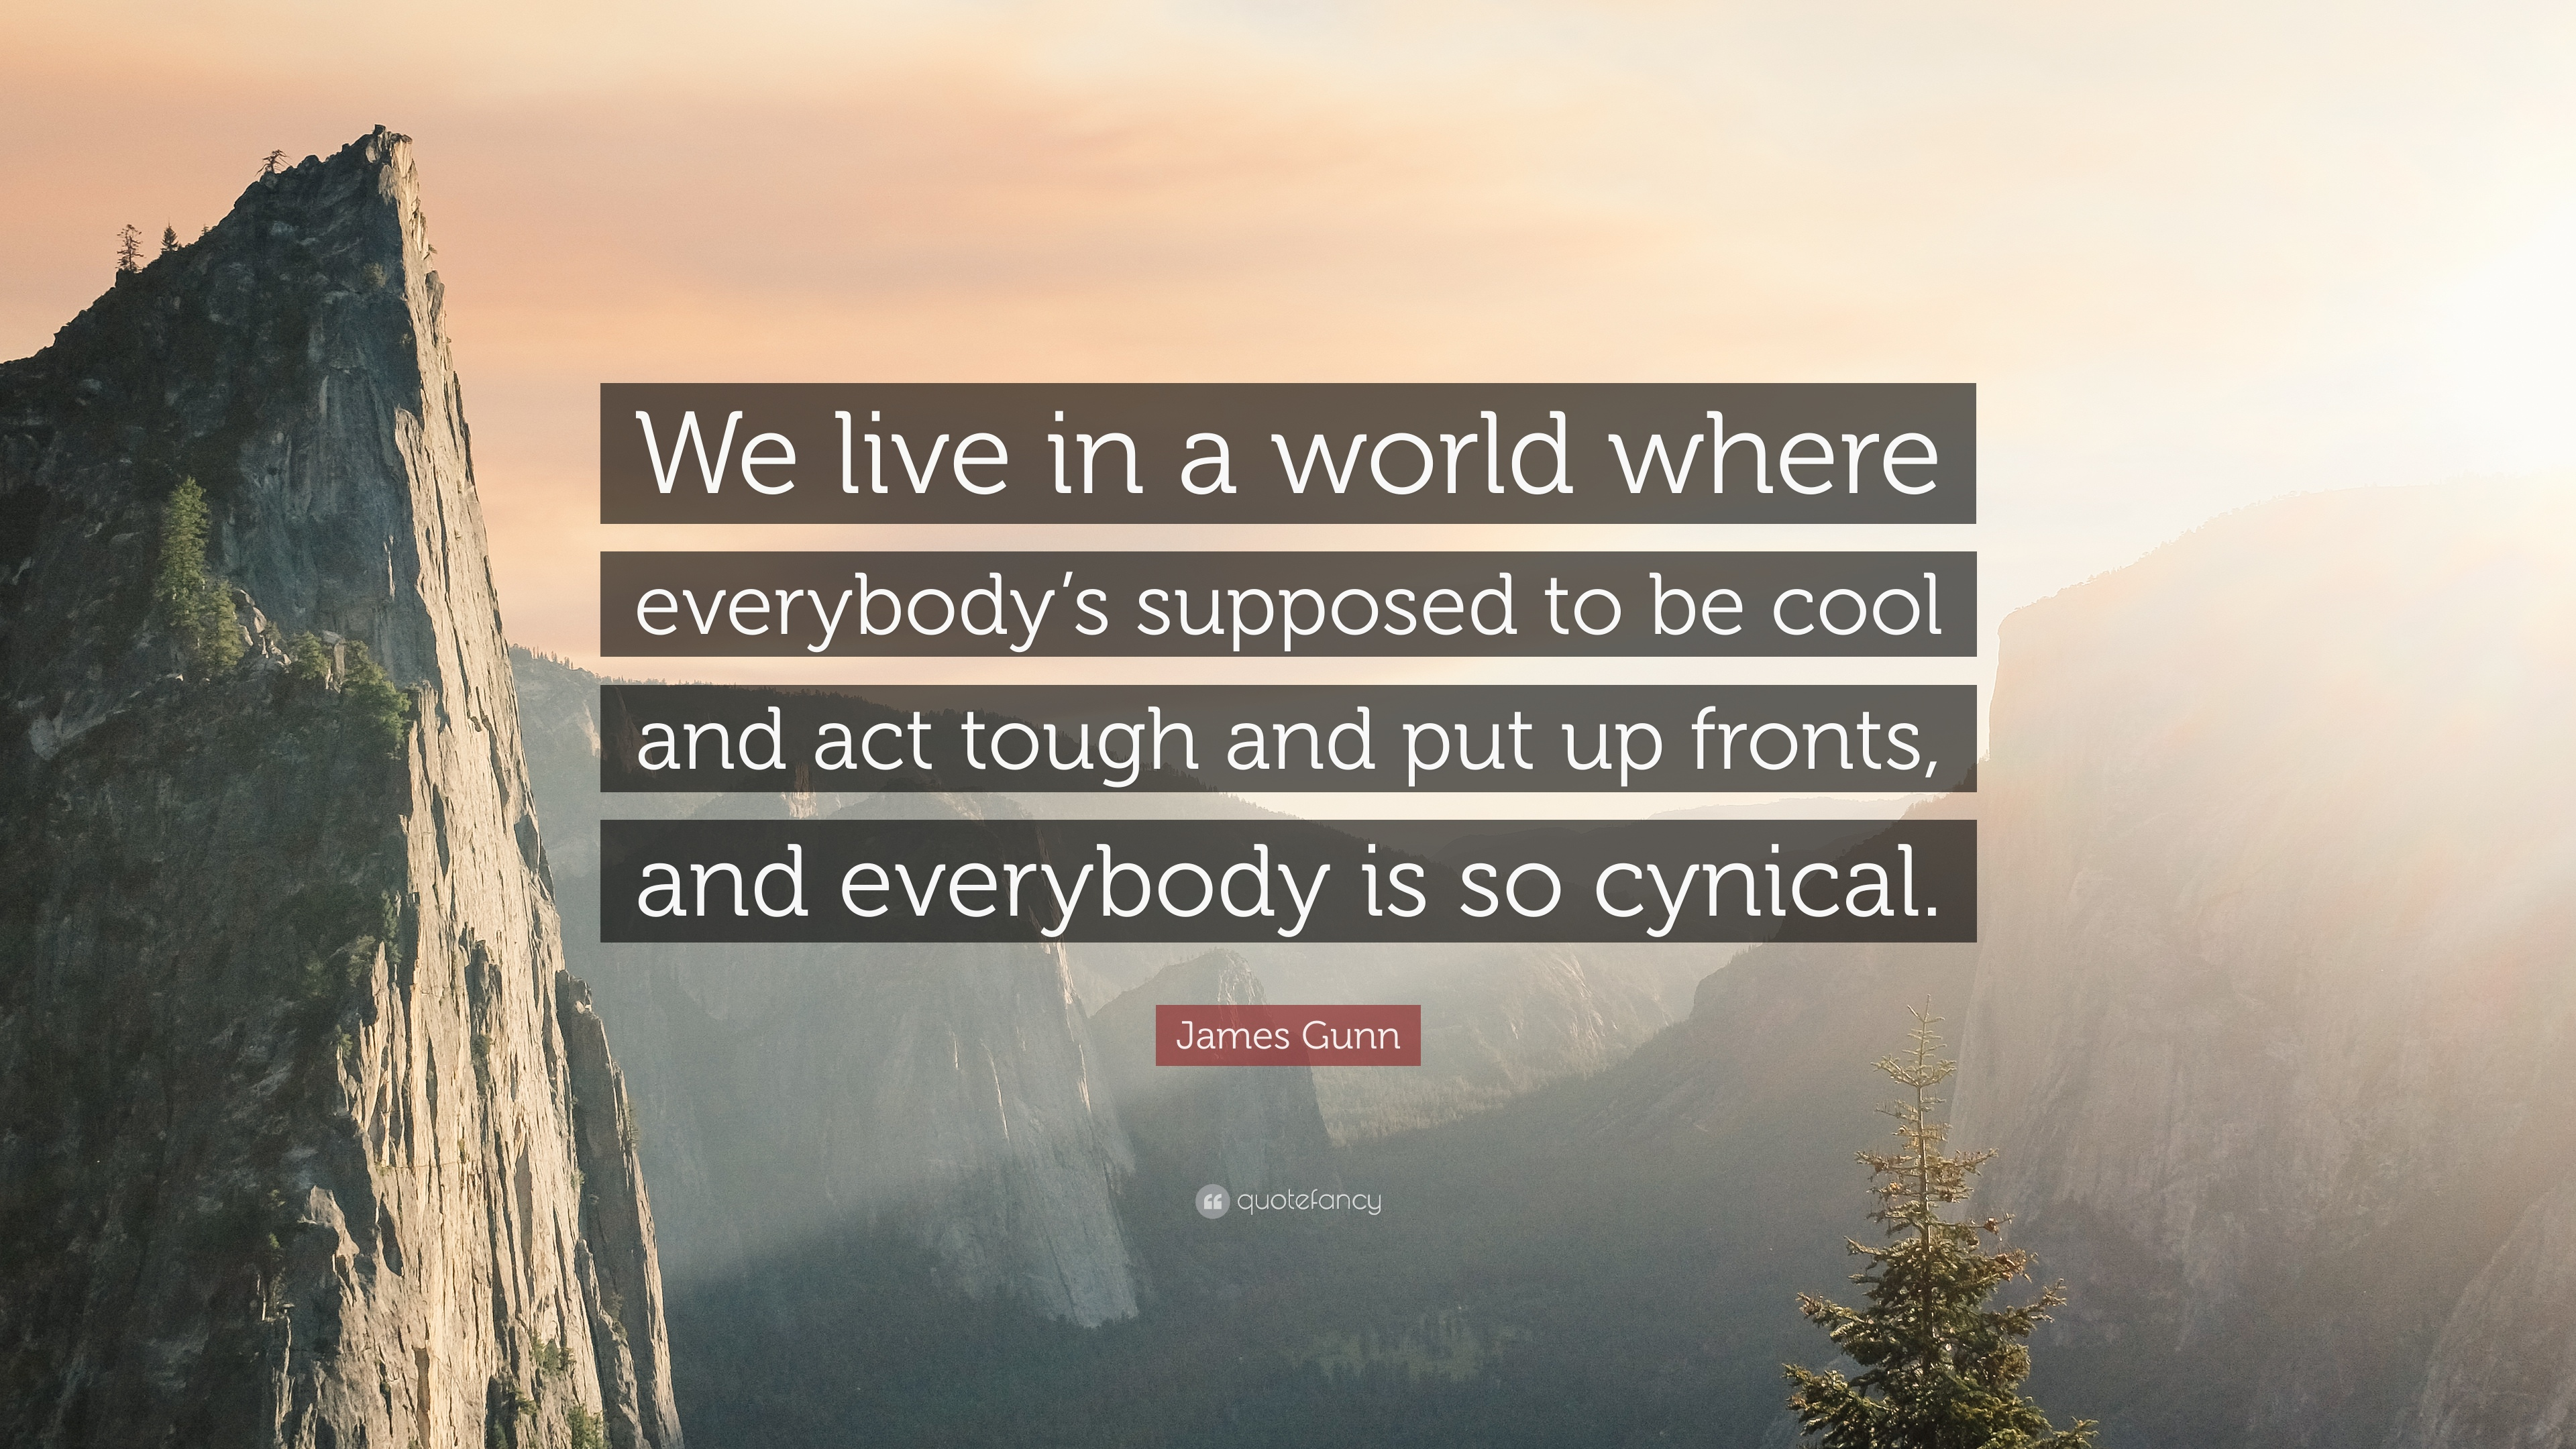 James Gunn Quote We Live In A World Where Everybodys Supposed To